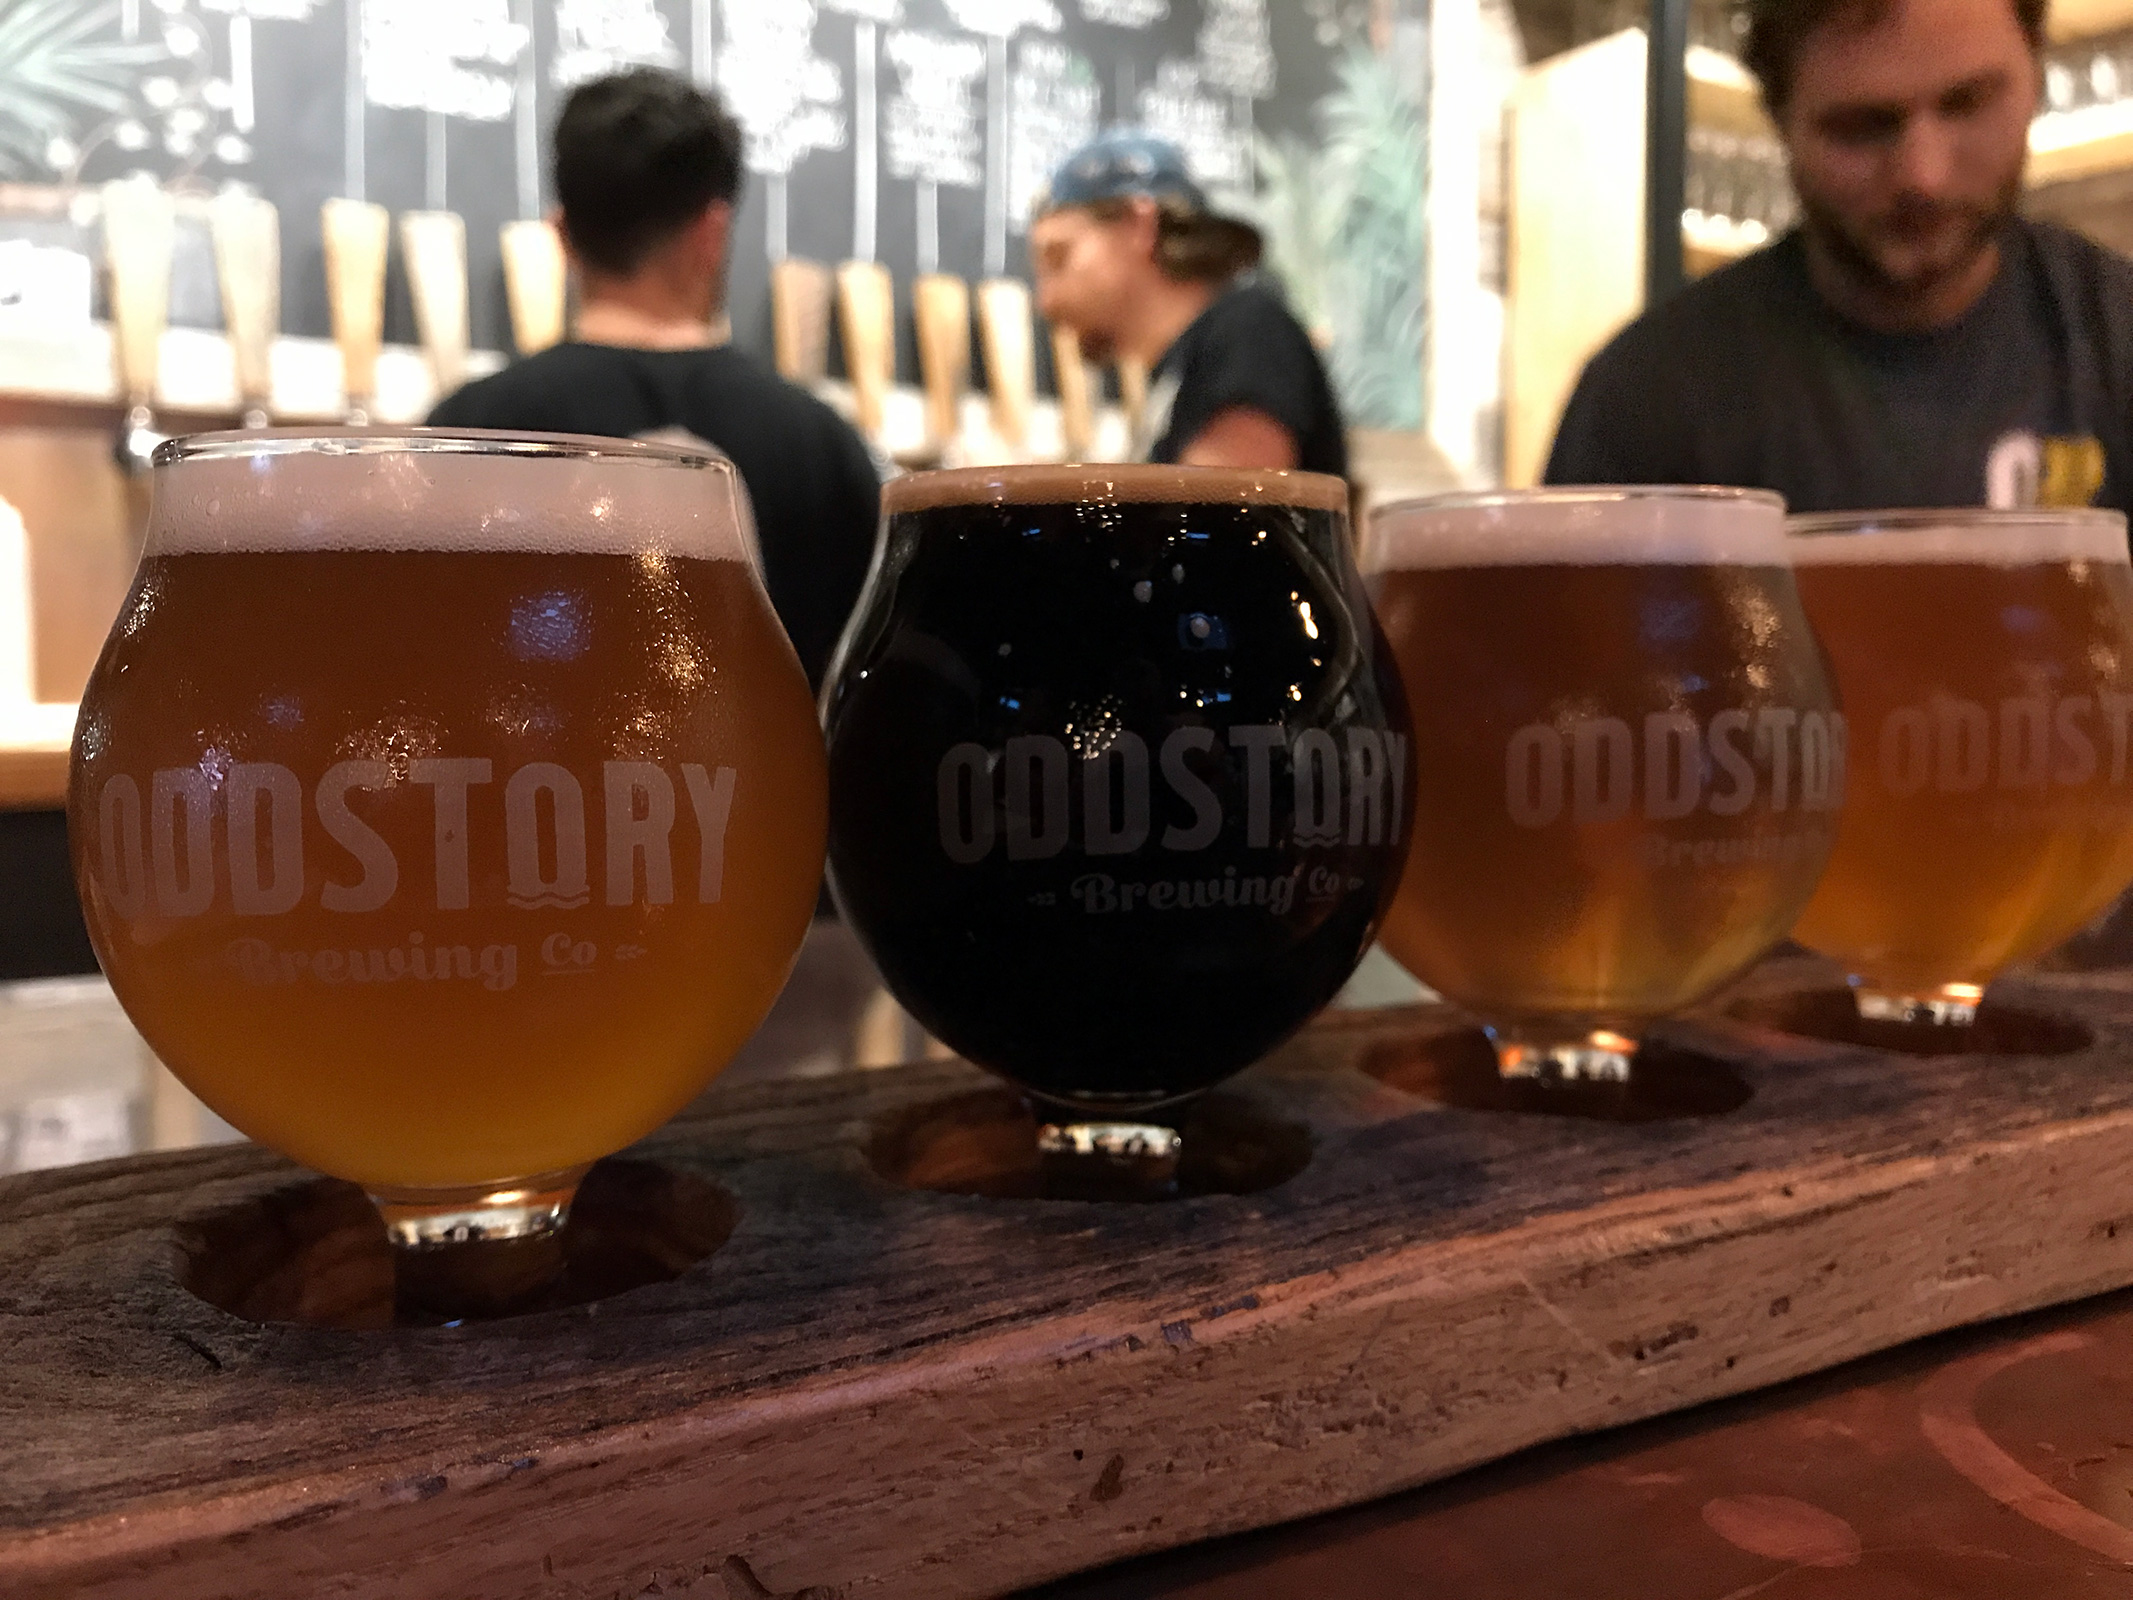 Oddstory Brewing Co. in Chattanooga, TN by Jets Like Taxis